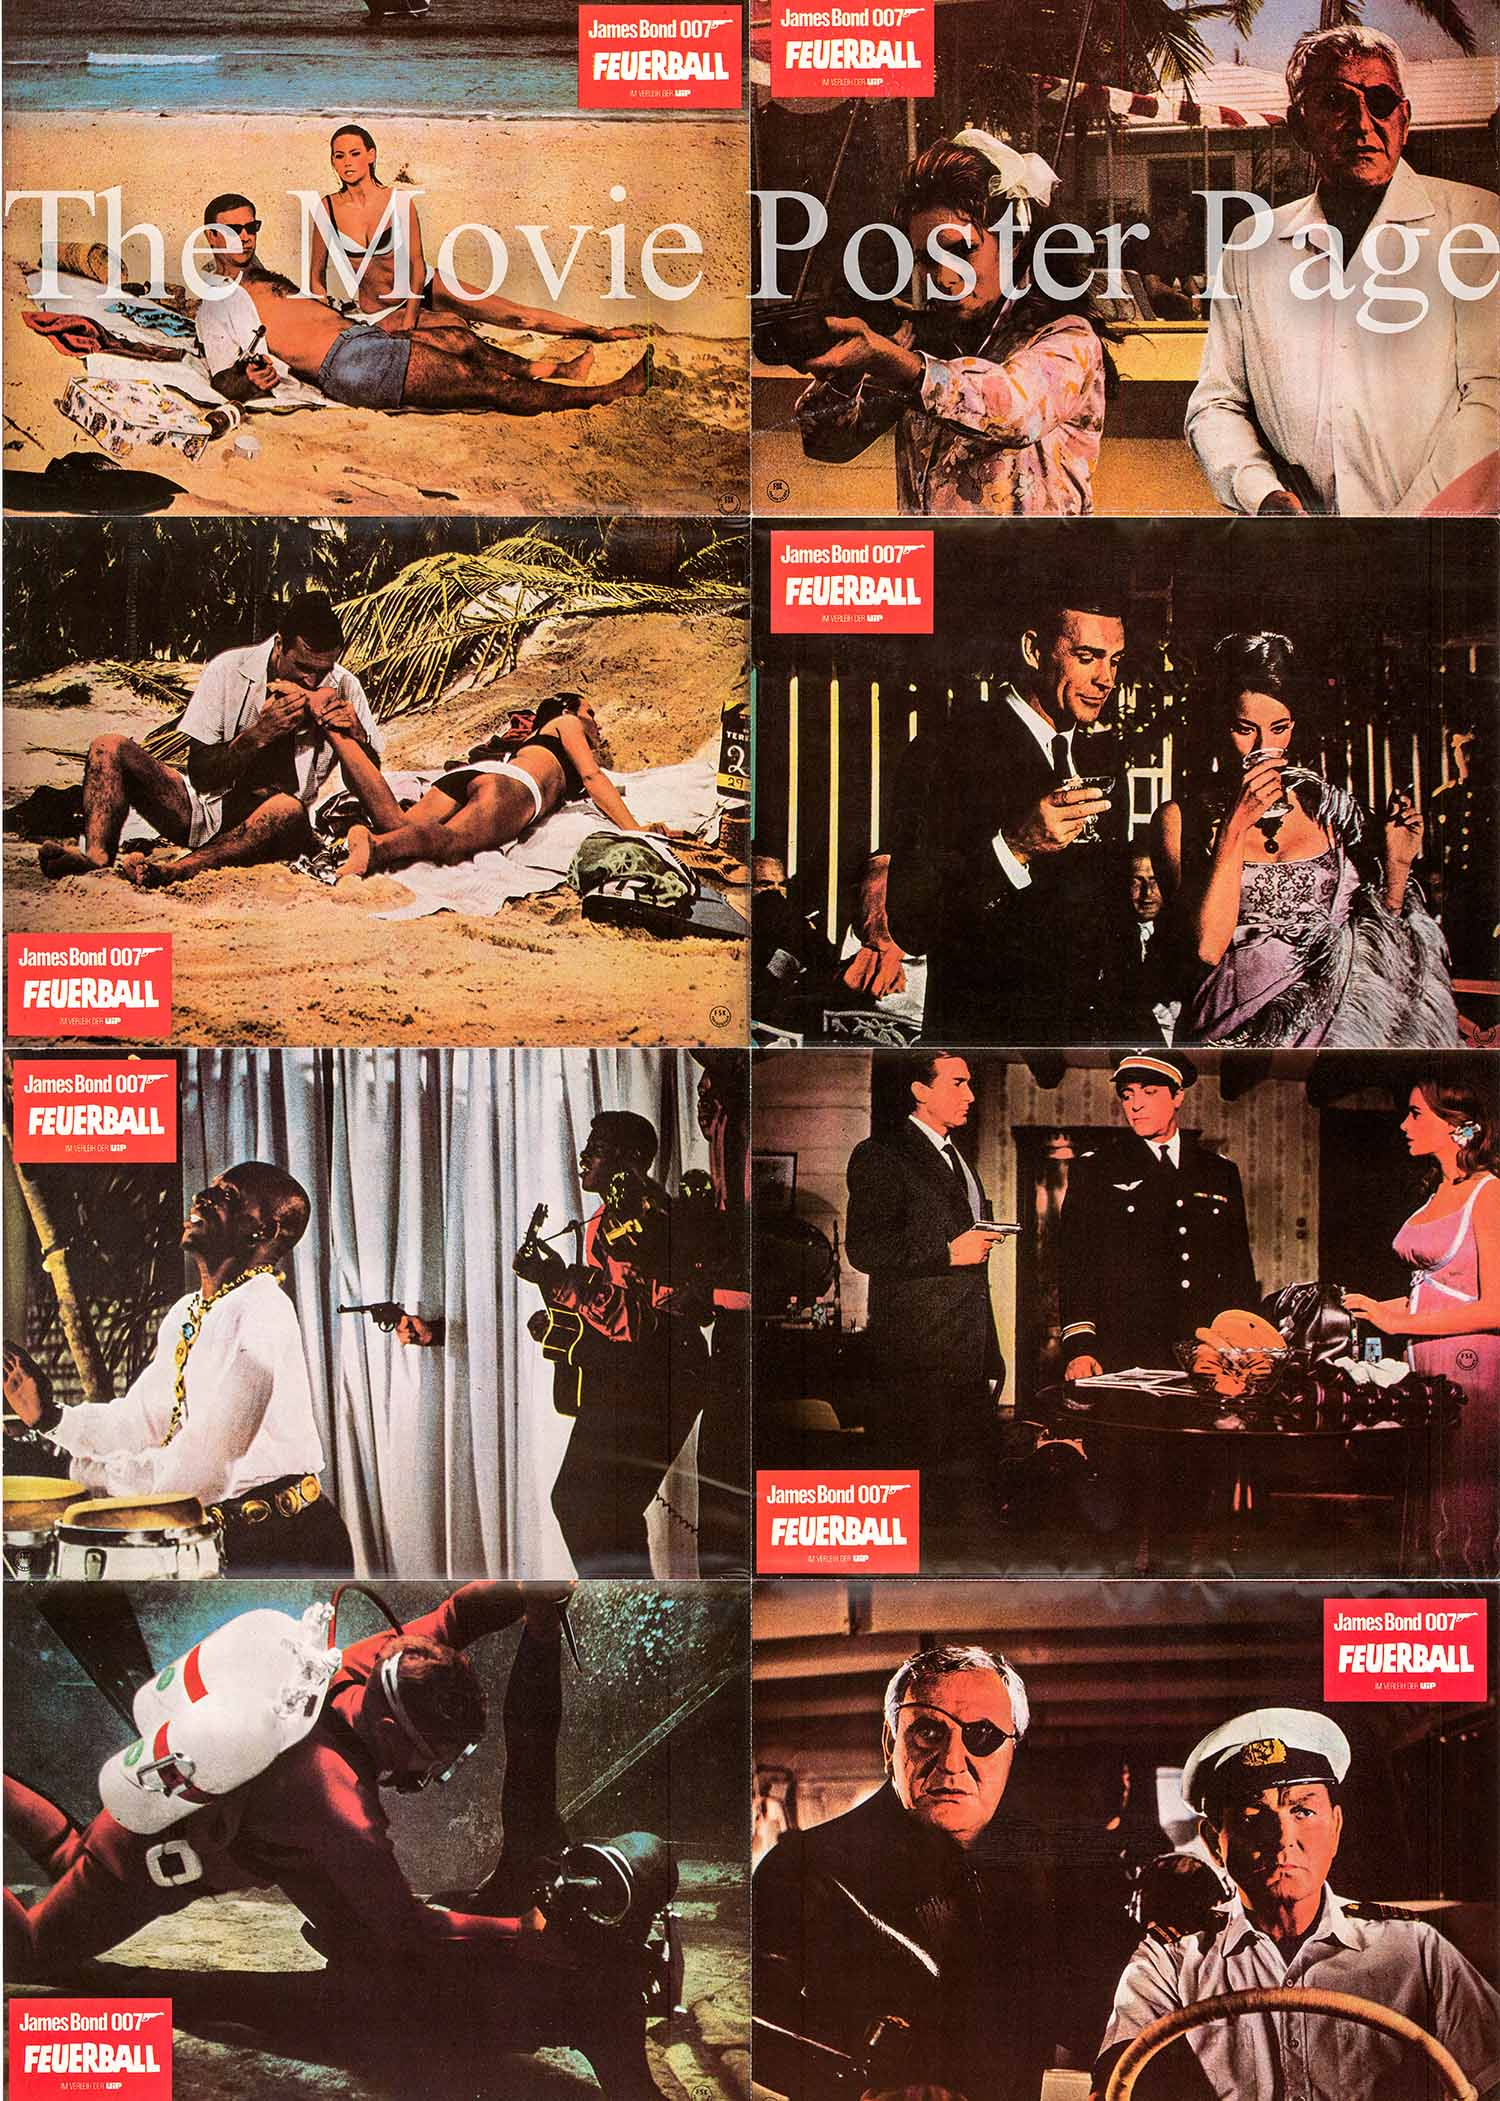 Pictured is a German perforated lobby sheet printed in the 1980s to promote a rerelease of the 1965 Terence Young film Thunderball starring Sean Connery as James Bond.